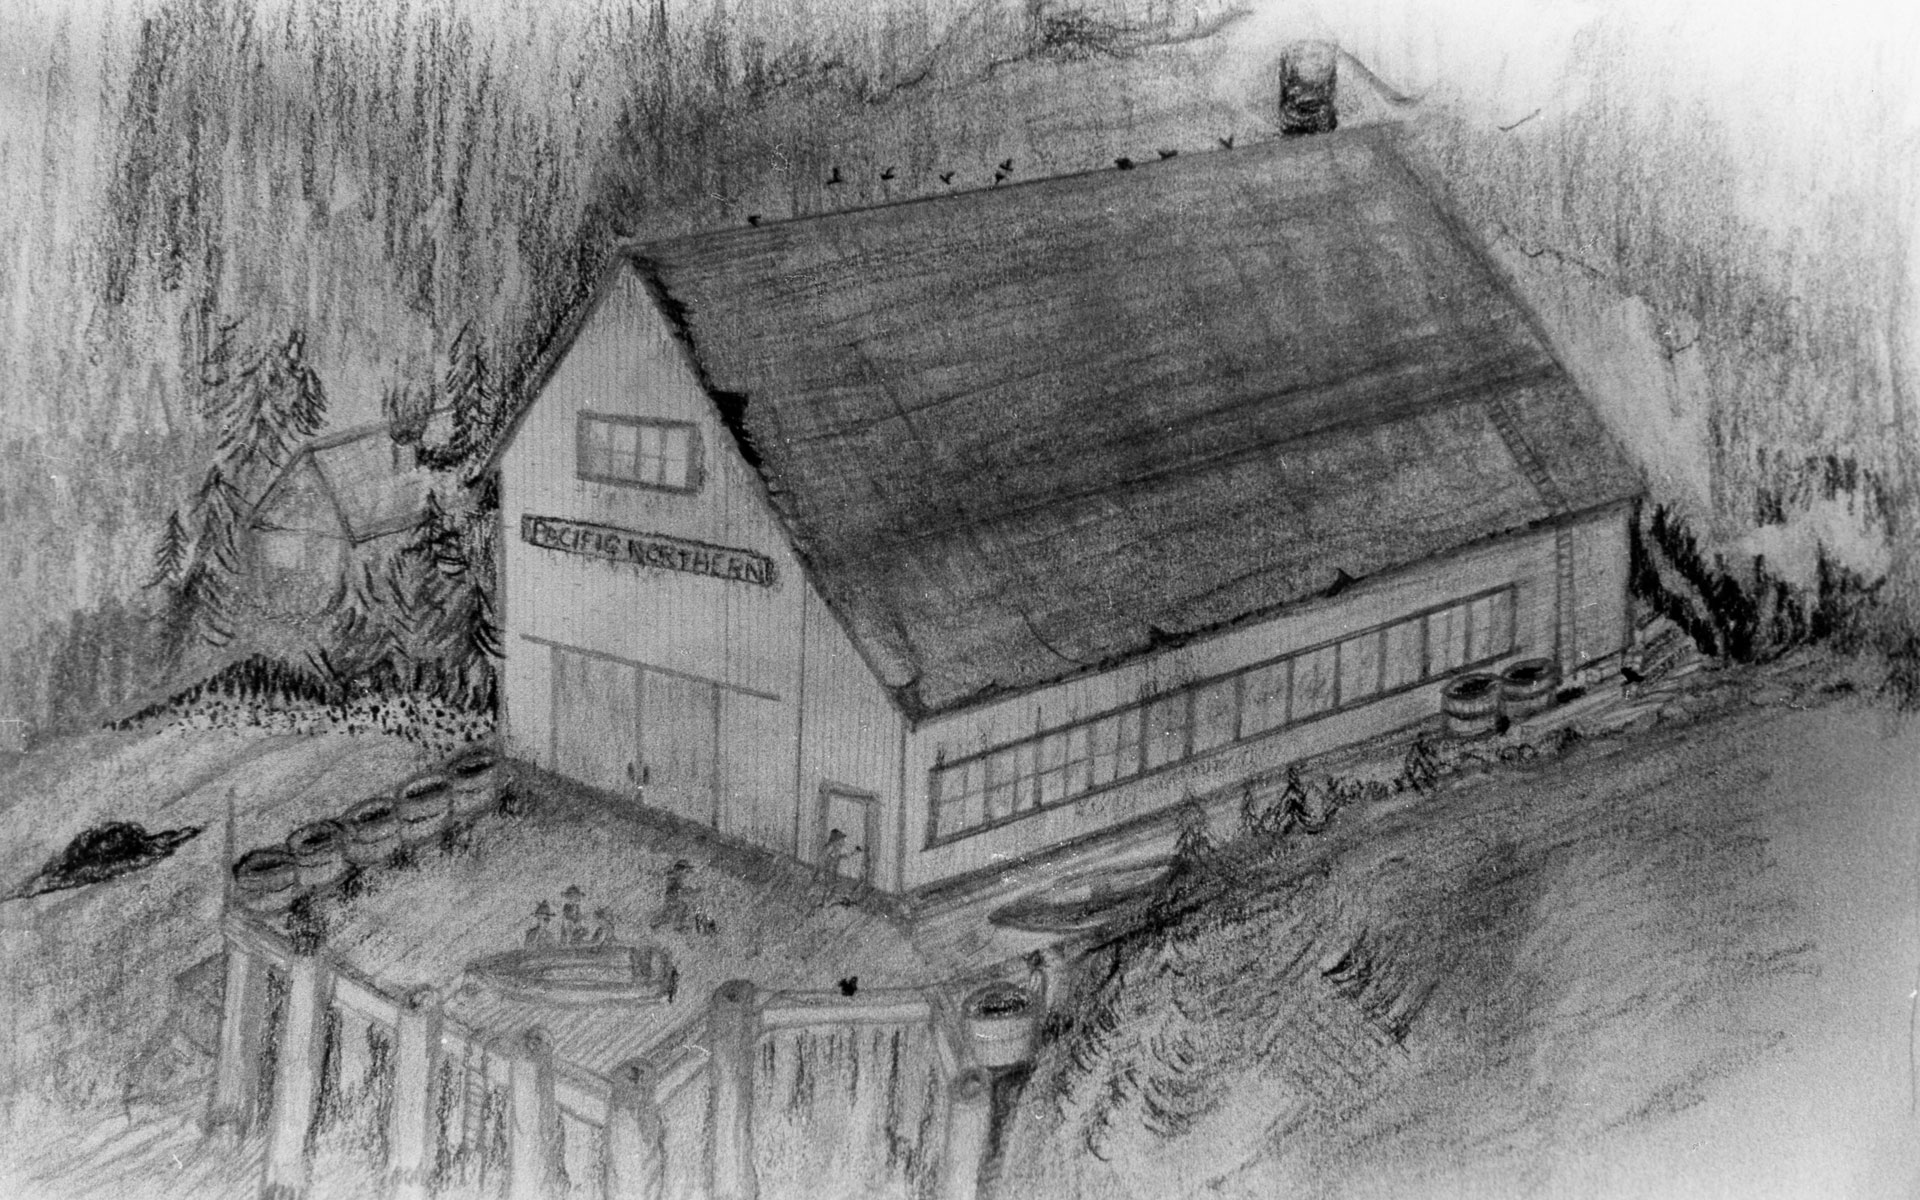 Black and white drawing of the main cannery building and dock.